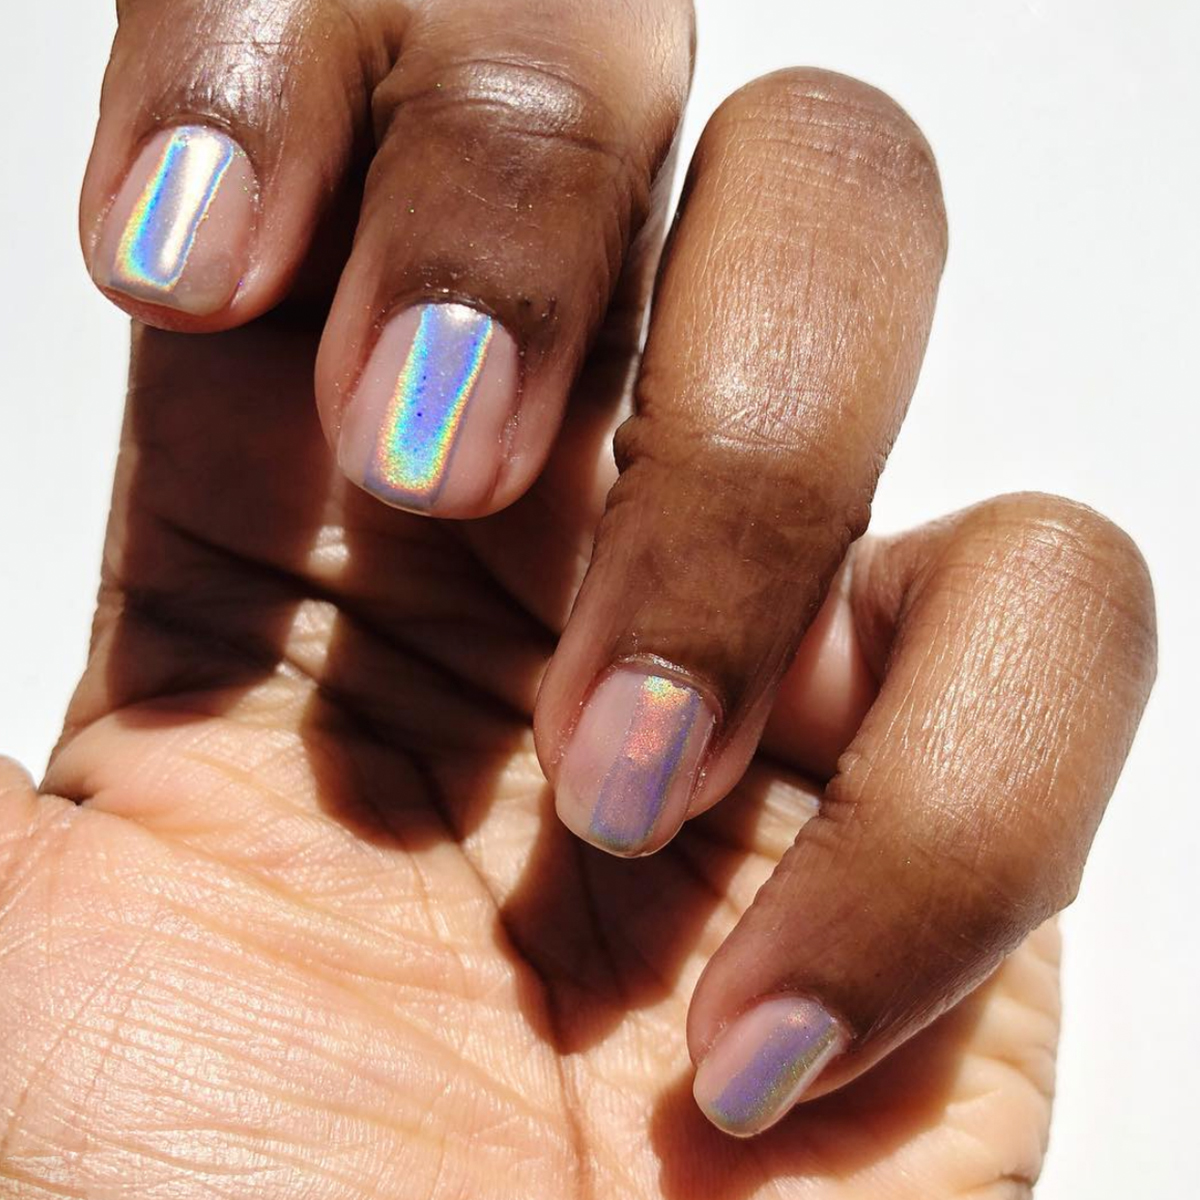 The 6 Best Tips to File Nails Like a Pro | Byrdie